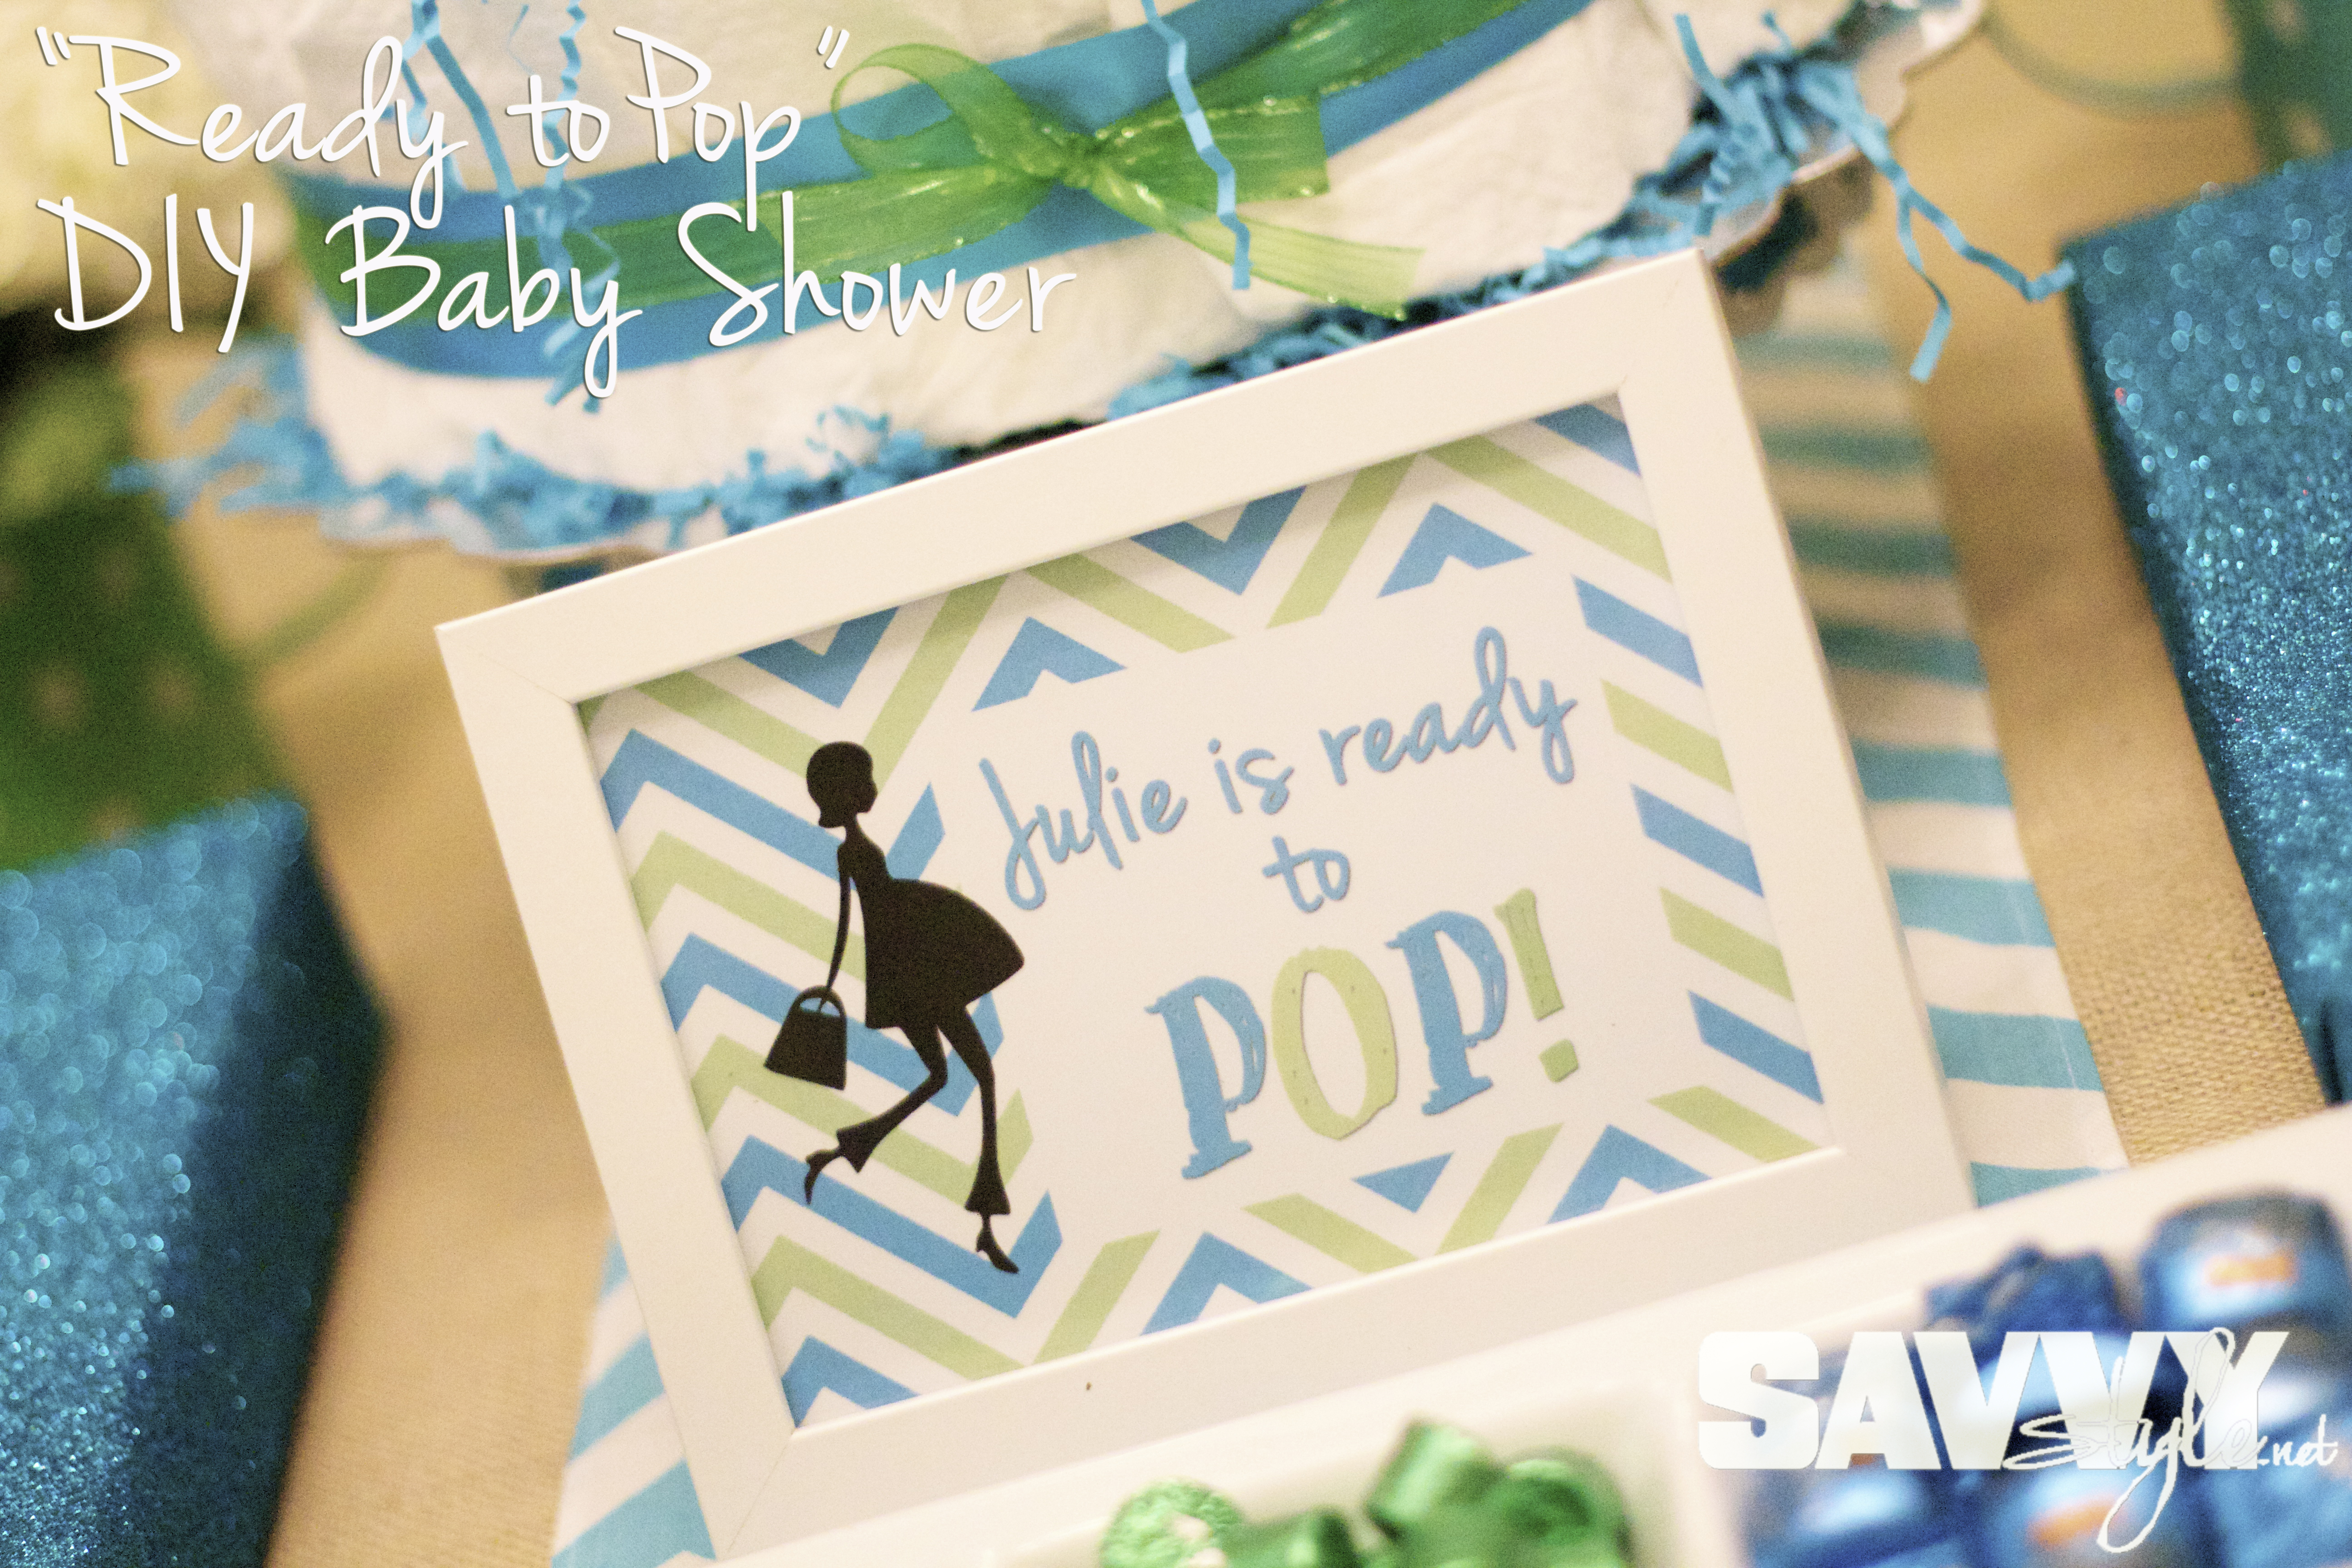 Ready To Pop Baby Shower Savvy Style